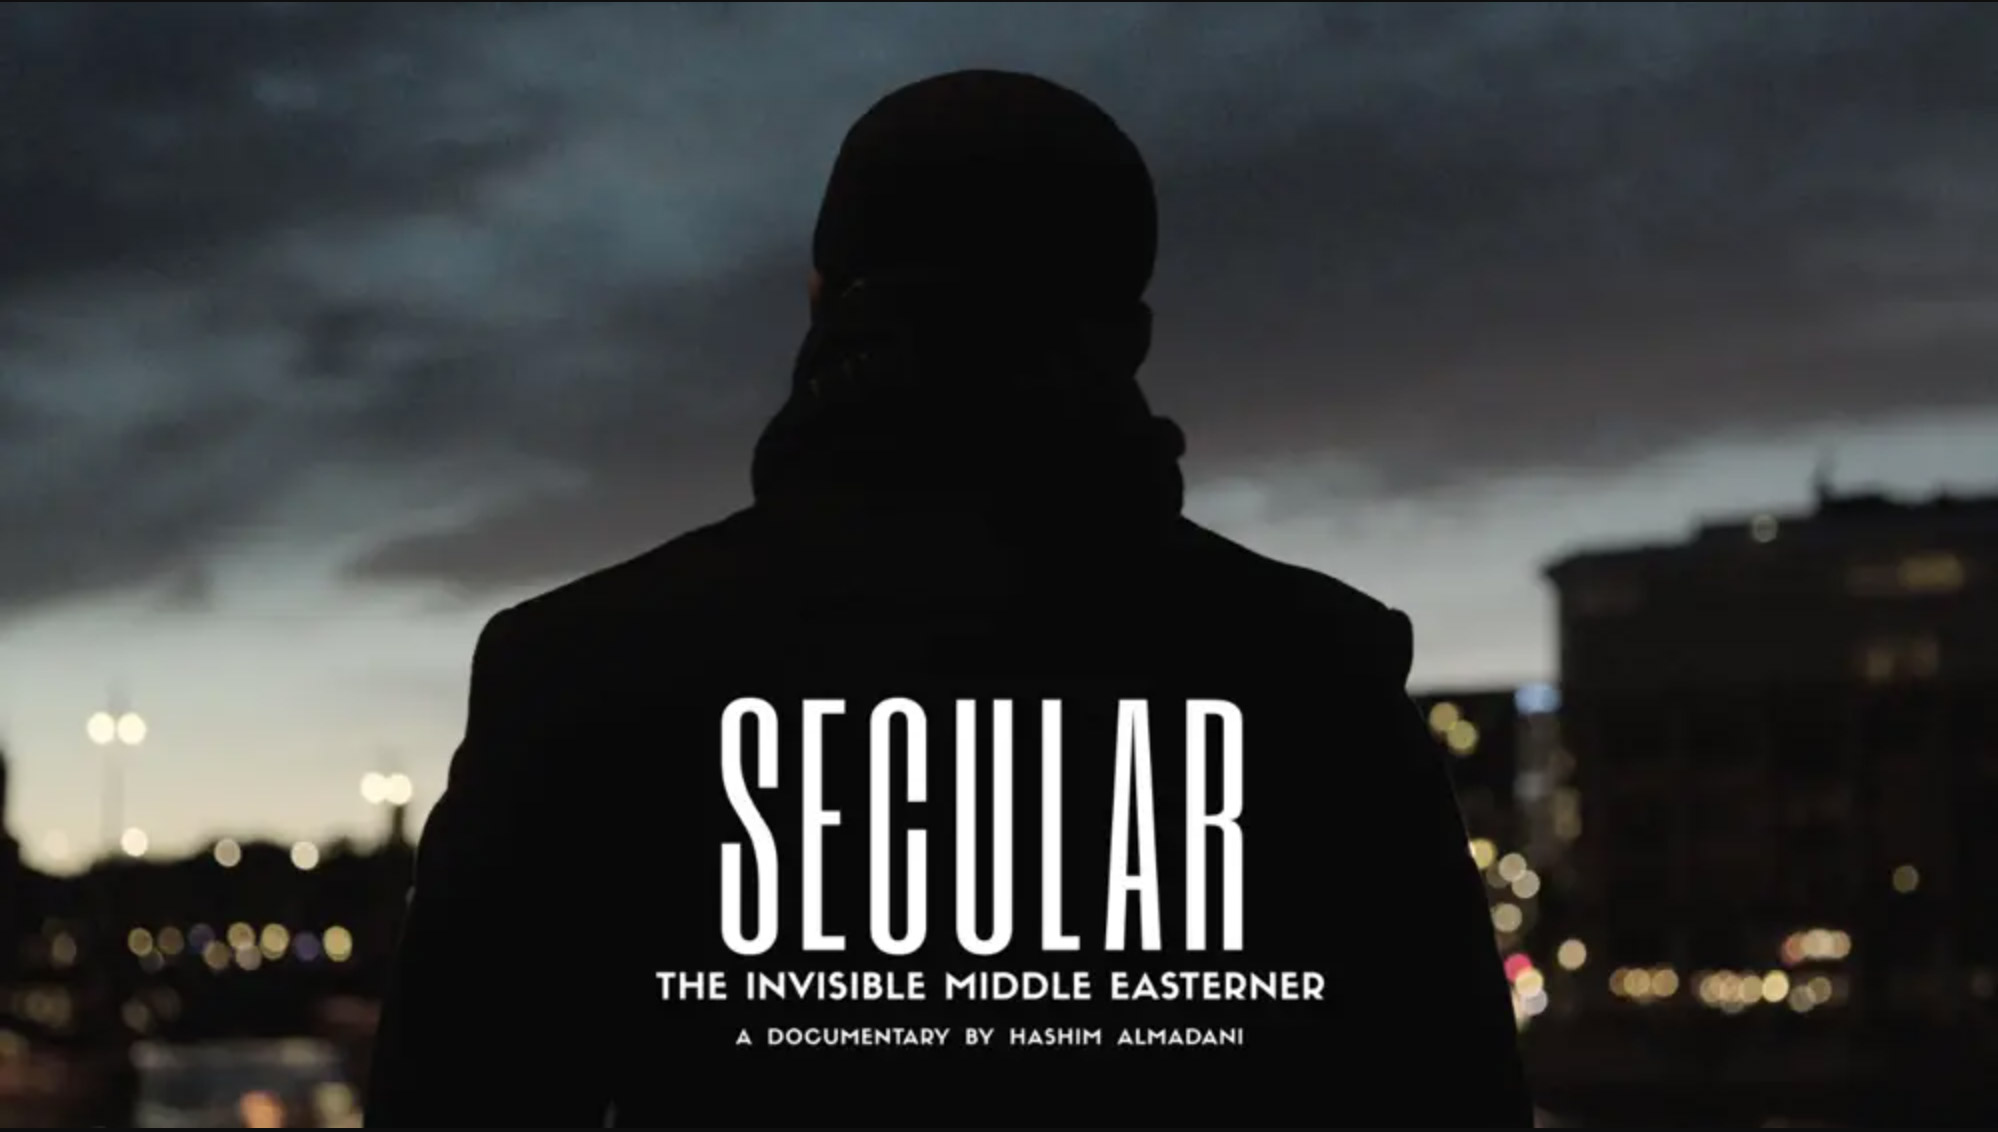 Secular, The Invisible Middle Easterner